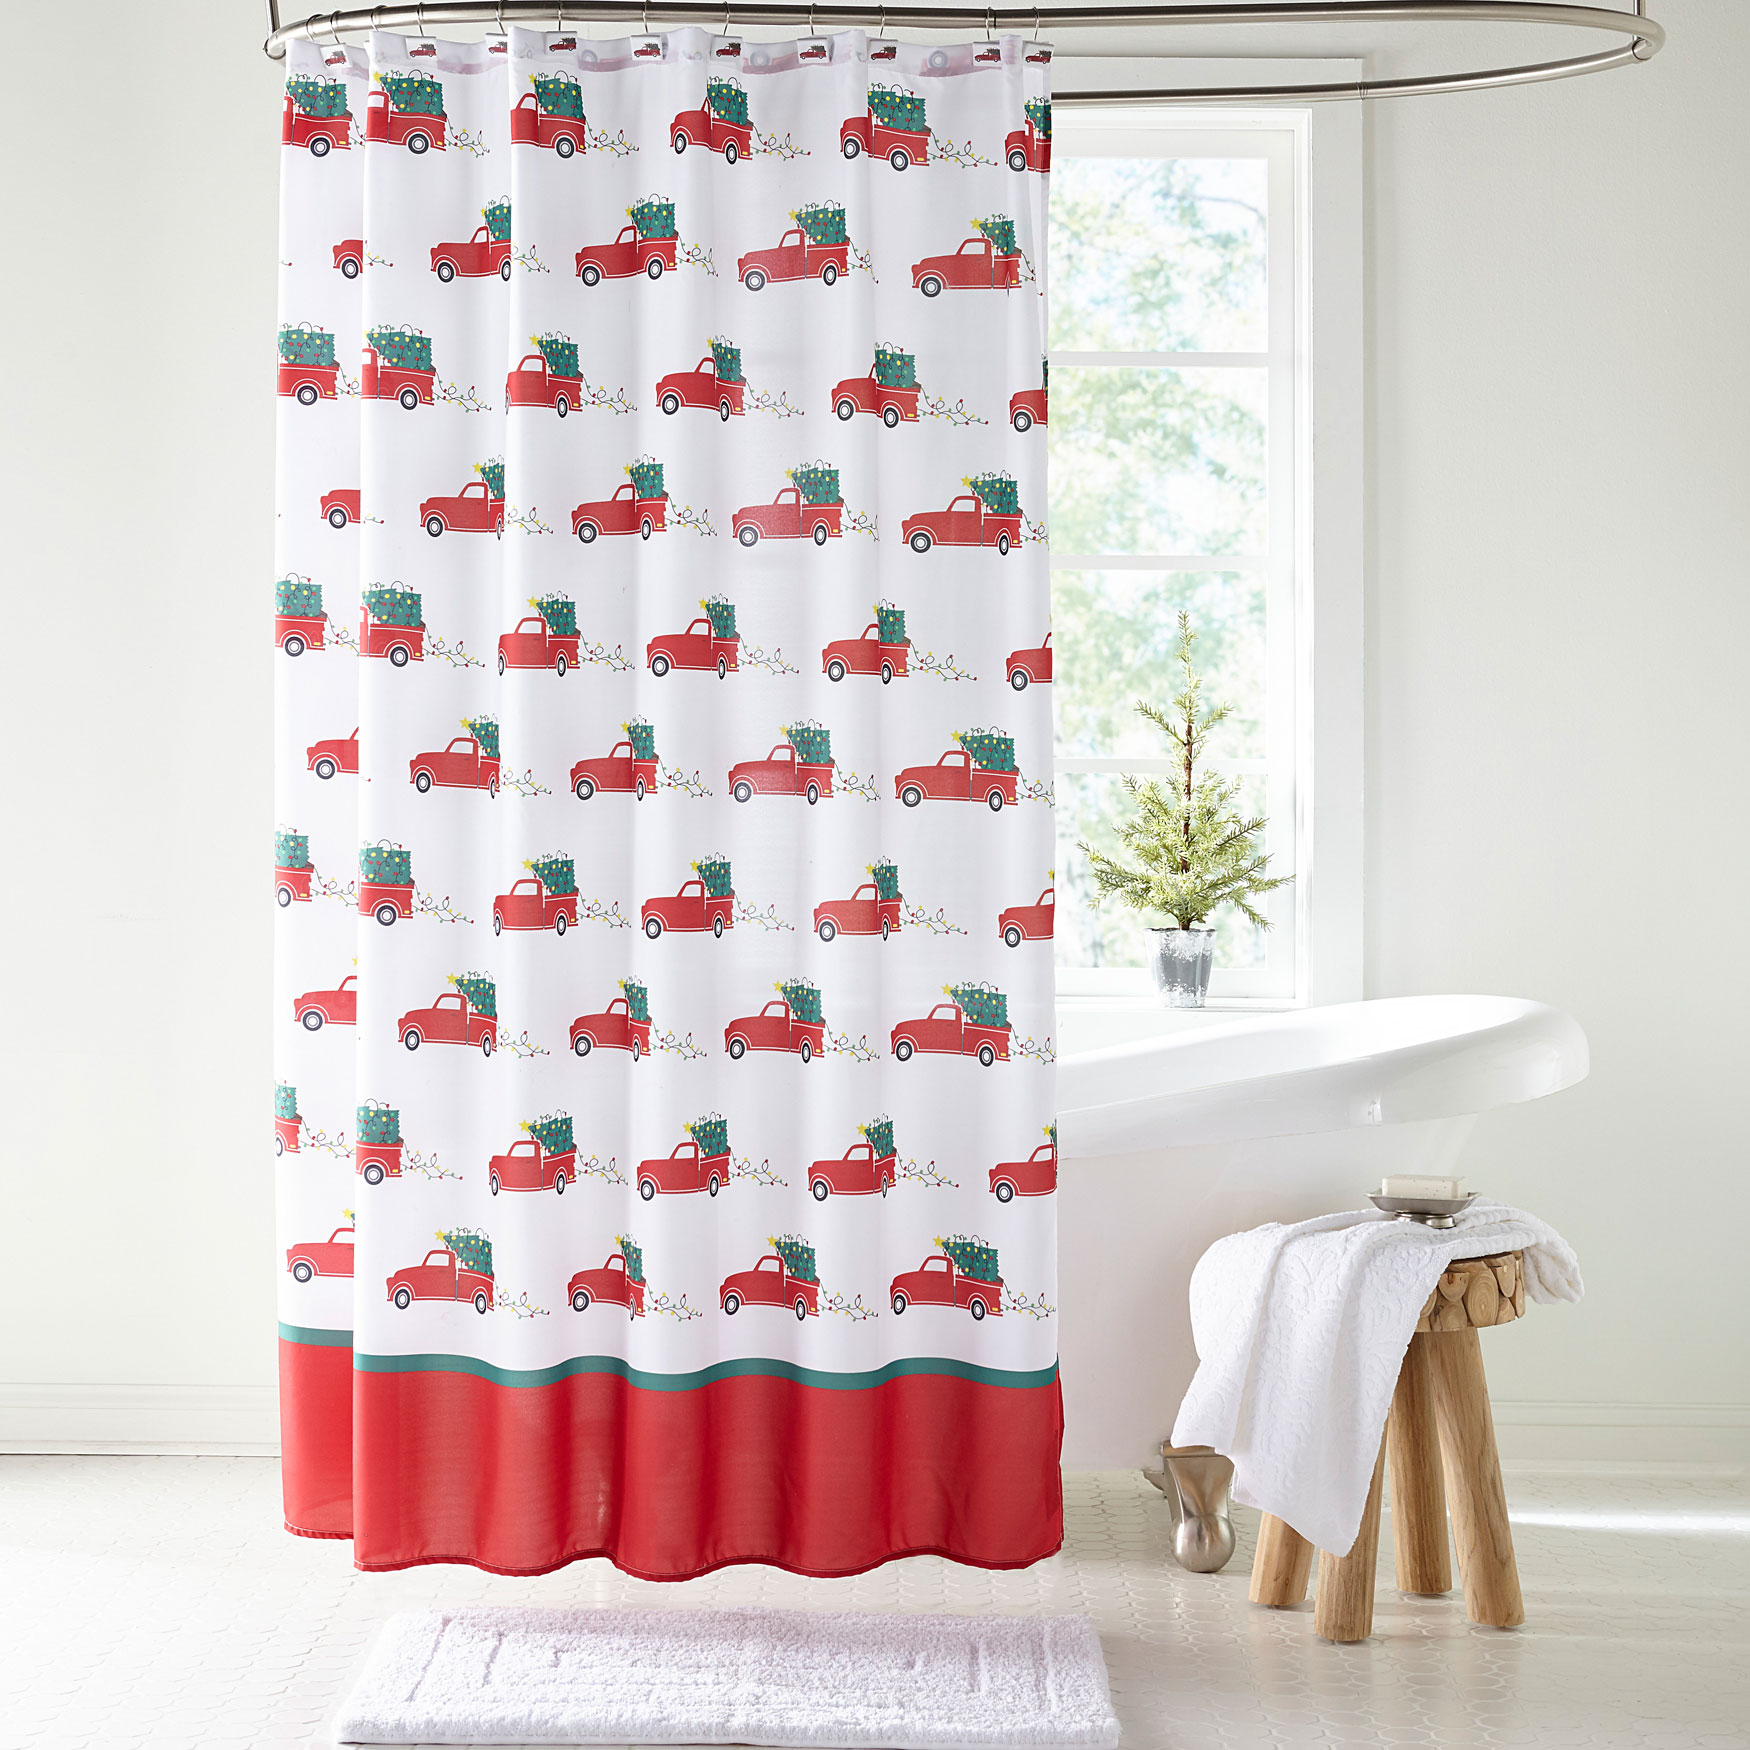 13 pc holiday shower curtains